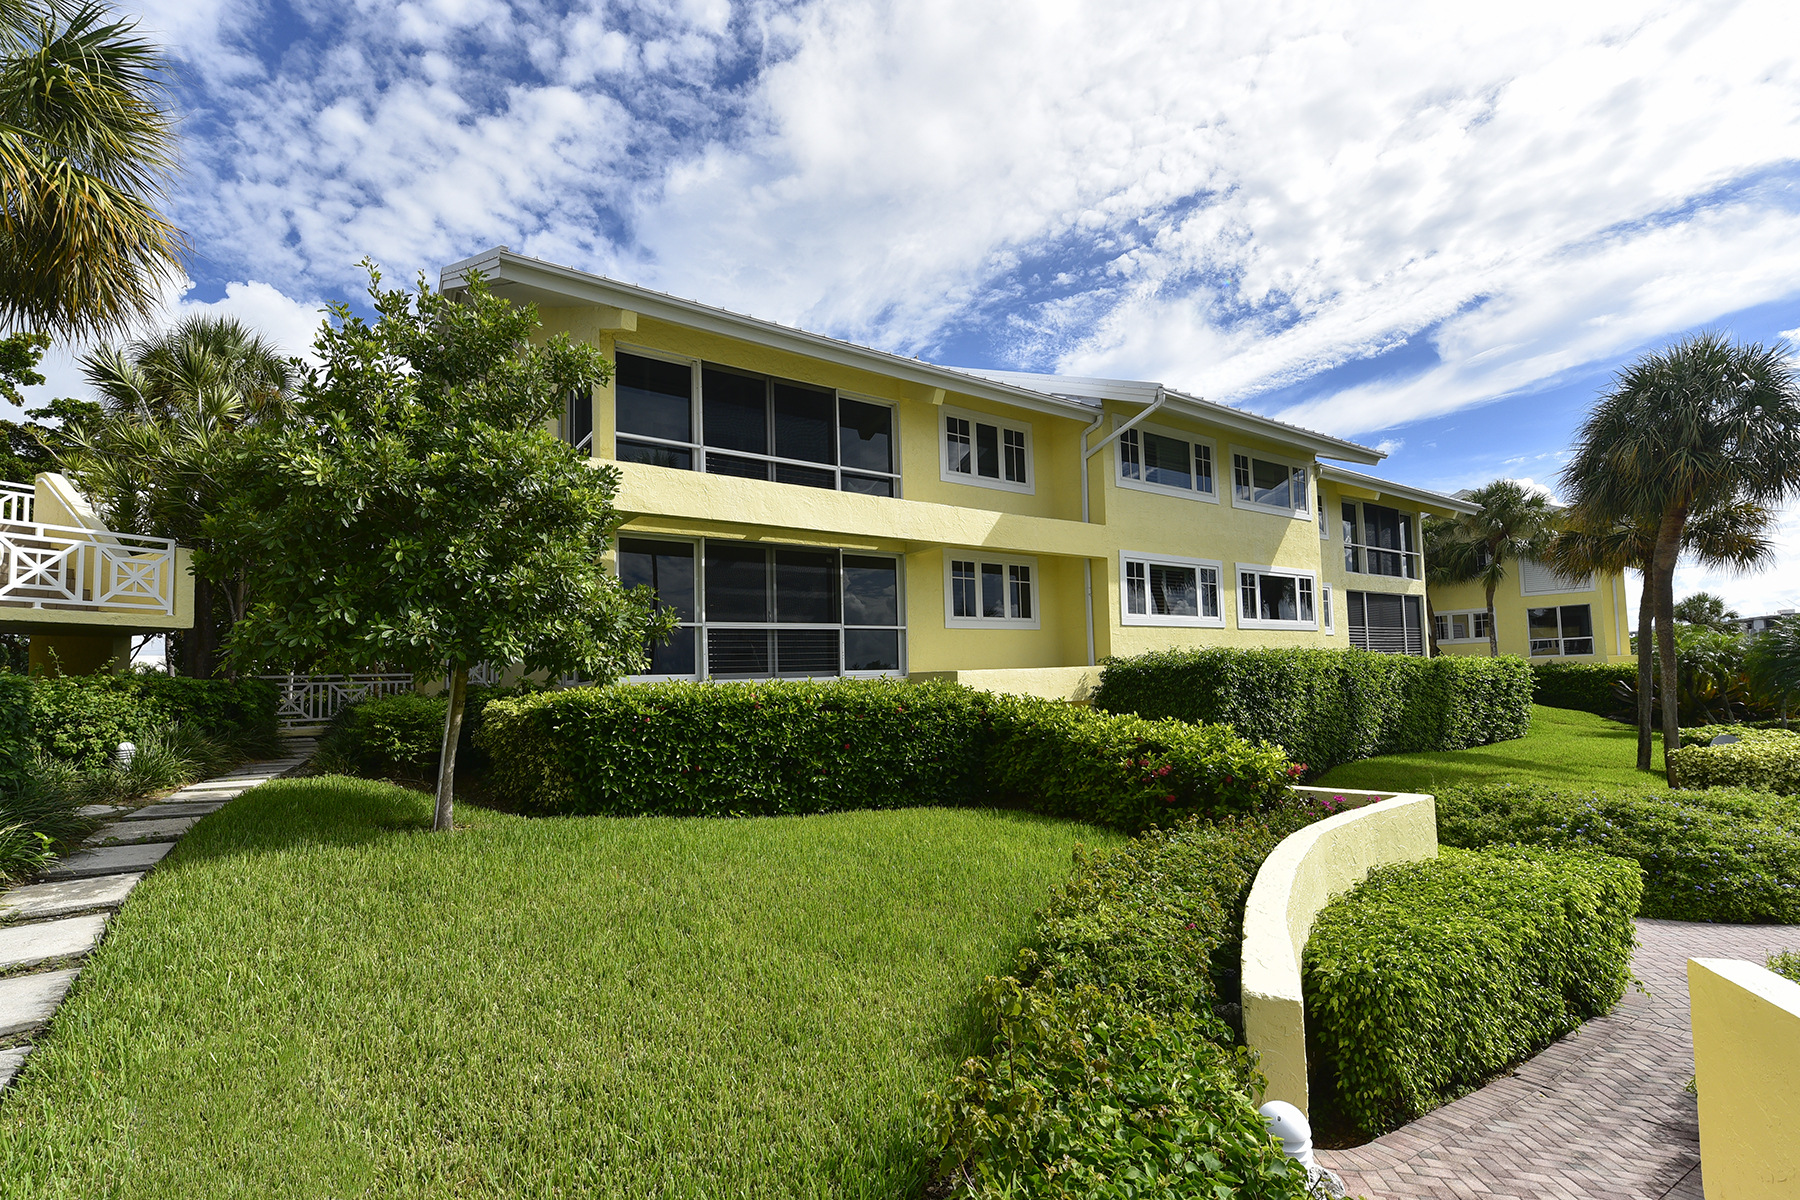 Additional photo for property listing at Waterfront Condominium at Ocean Reef 18 Marina Drive, Unit A Key Largo, Florida 33037 États-Unis